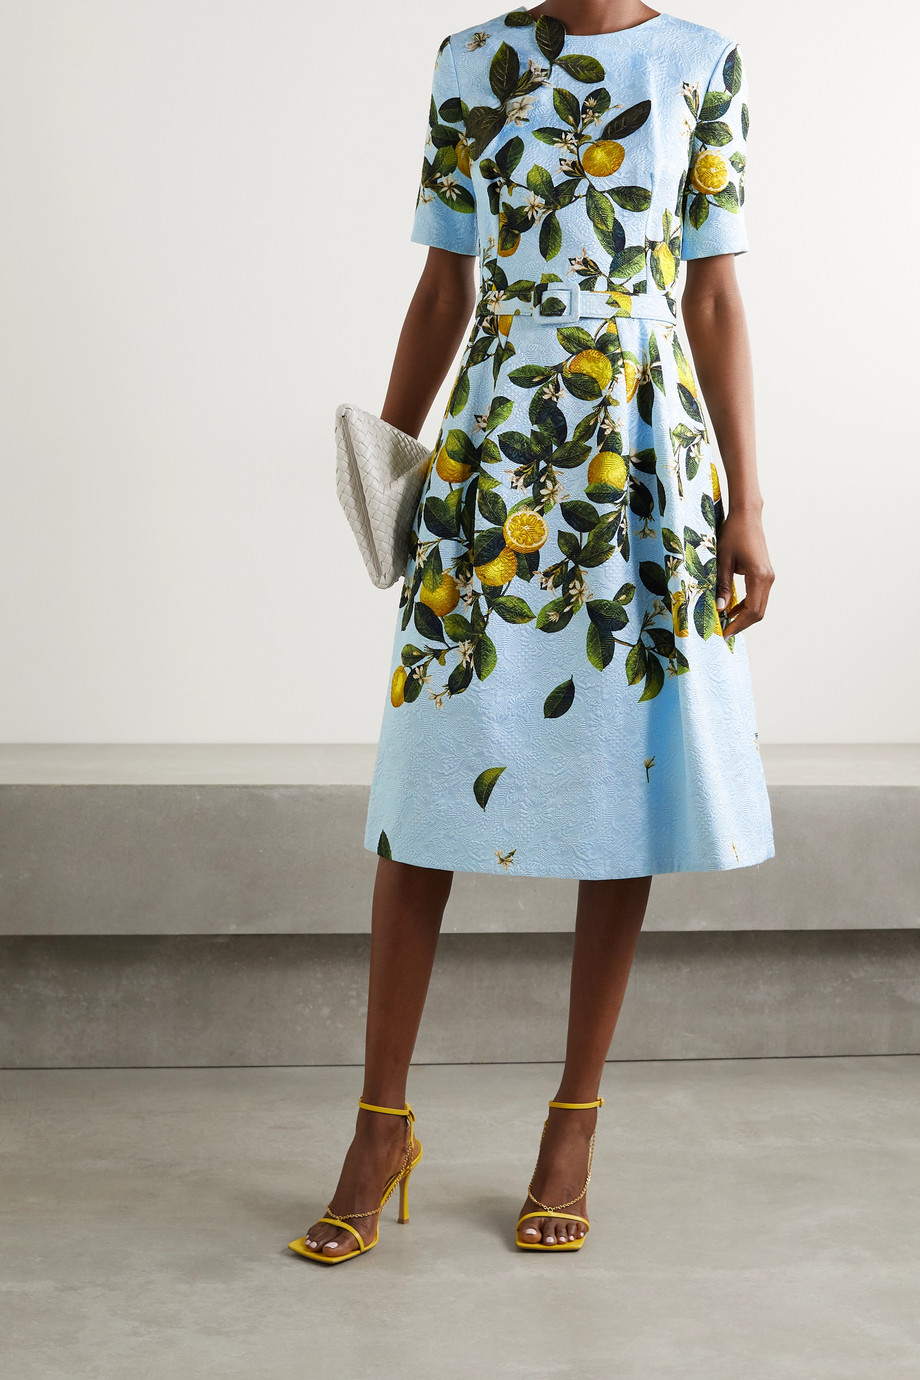 Oscar de la Renta Belted appliquéd printed jacquard dress